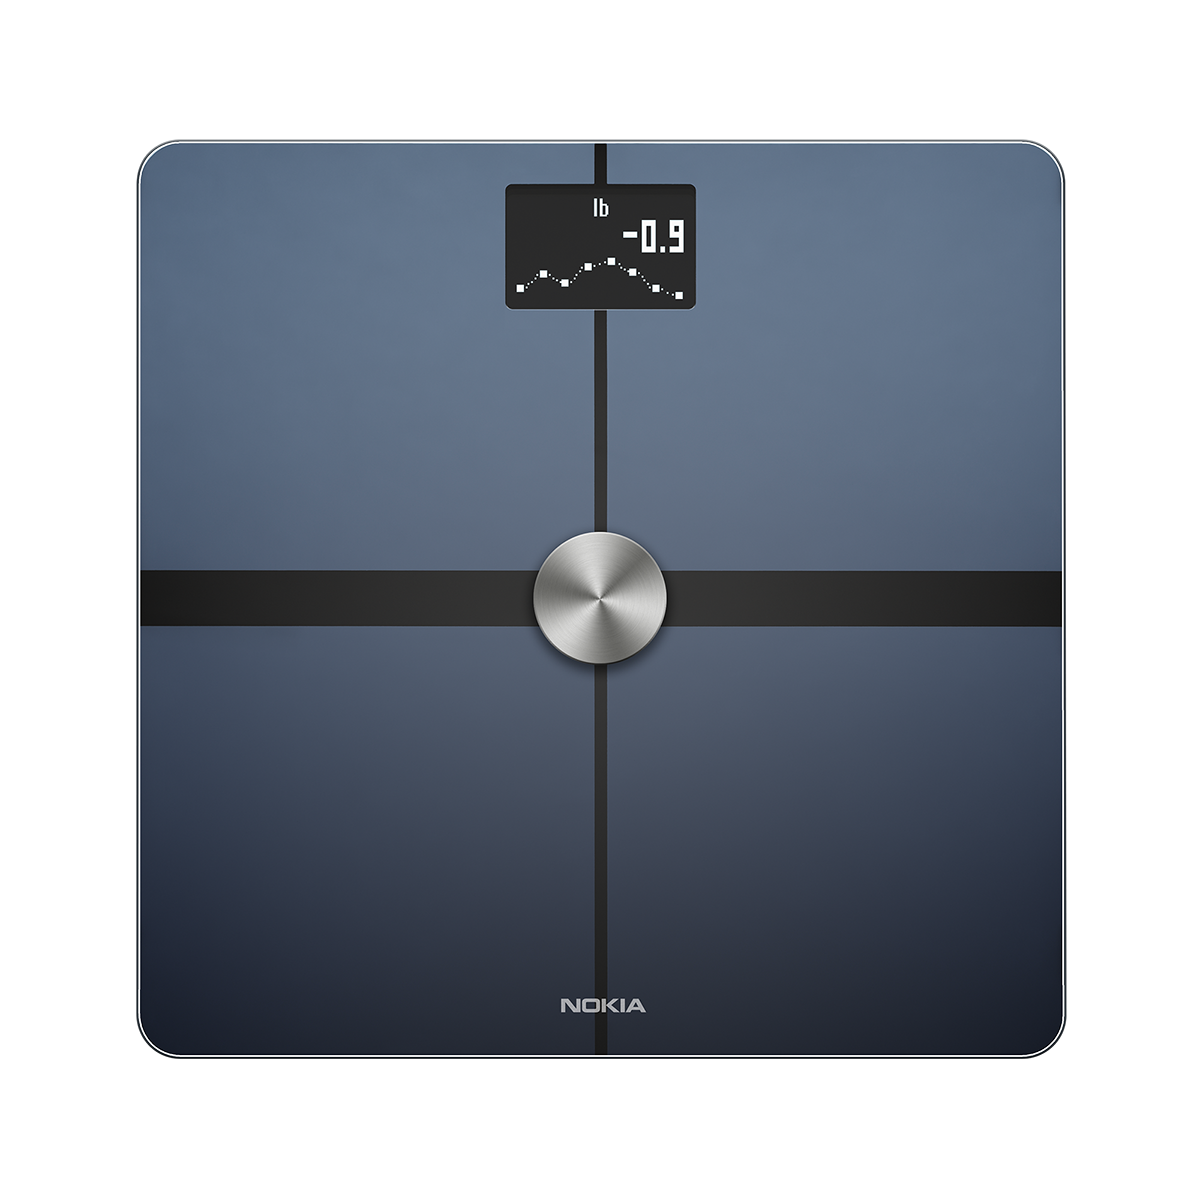 Nokia Body+ Wifi Scale - A WiFi scale that uses patented Position ControlTM technology to deliver the most accurate body composition readings (weight, body fat and water percentage, muscle mass and bone mass). Nokia Body+ provides immediate on-screen feedback and automatically synchronizes with your smartphone to display trends and help you reach your weight goals. Full body composition - Track weight, BMI, total body fat and water percentage plus bone and muscle mass Best-in-class accuracy - Get high-accuracy measurements via Position ControlTM technology, a patented body position detector. 9 to 396 lbs - 0,2 lbs precision. Get personalized coaching via the Health Mate application that turns your raw data into in-depth graphs of weight, body mass index, fat mass, muscle mass, water mass and bone mass while giving you advice to help you reach your objectives. Nutrition tracking - Set a weight goal and manage your daily calorie budget with integrated nutrition tracking Available in black or white. Available on iOS and Android, smartphone or tablet with WiFi or Bluetooth connectivity. Automatic synchronization. Buy on the Nokia Health Official Store : 24-months warranty, 30 days money back guarantee, exclusive offers, dedicated support.